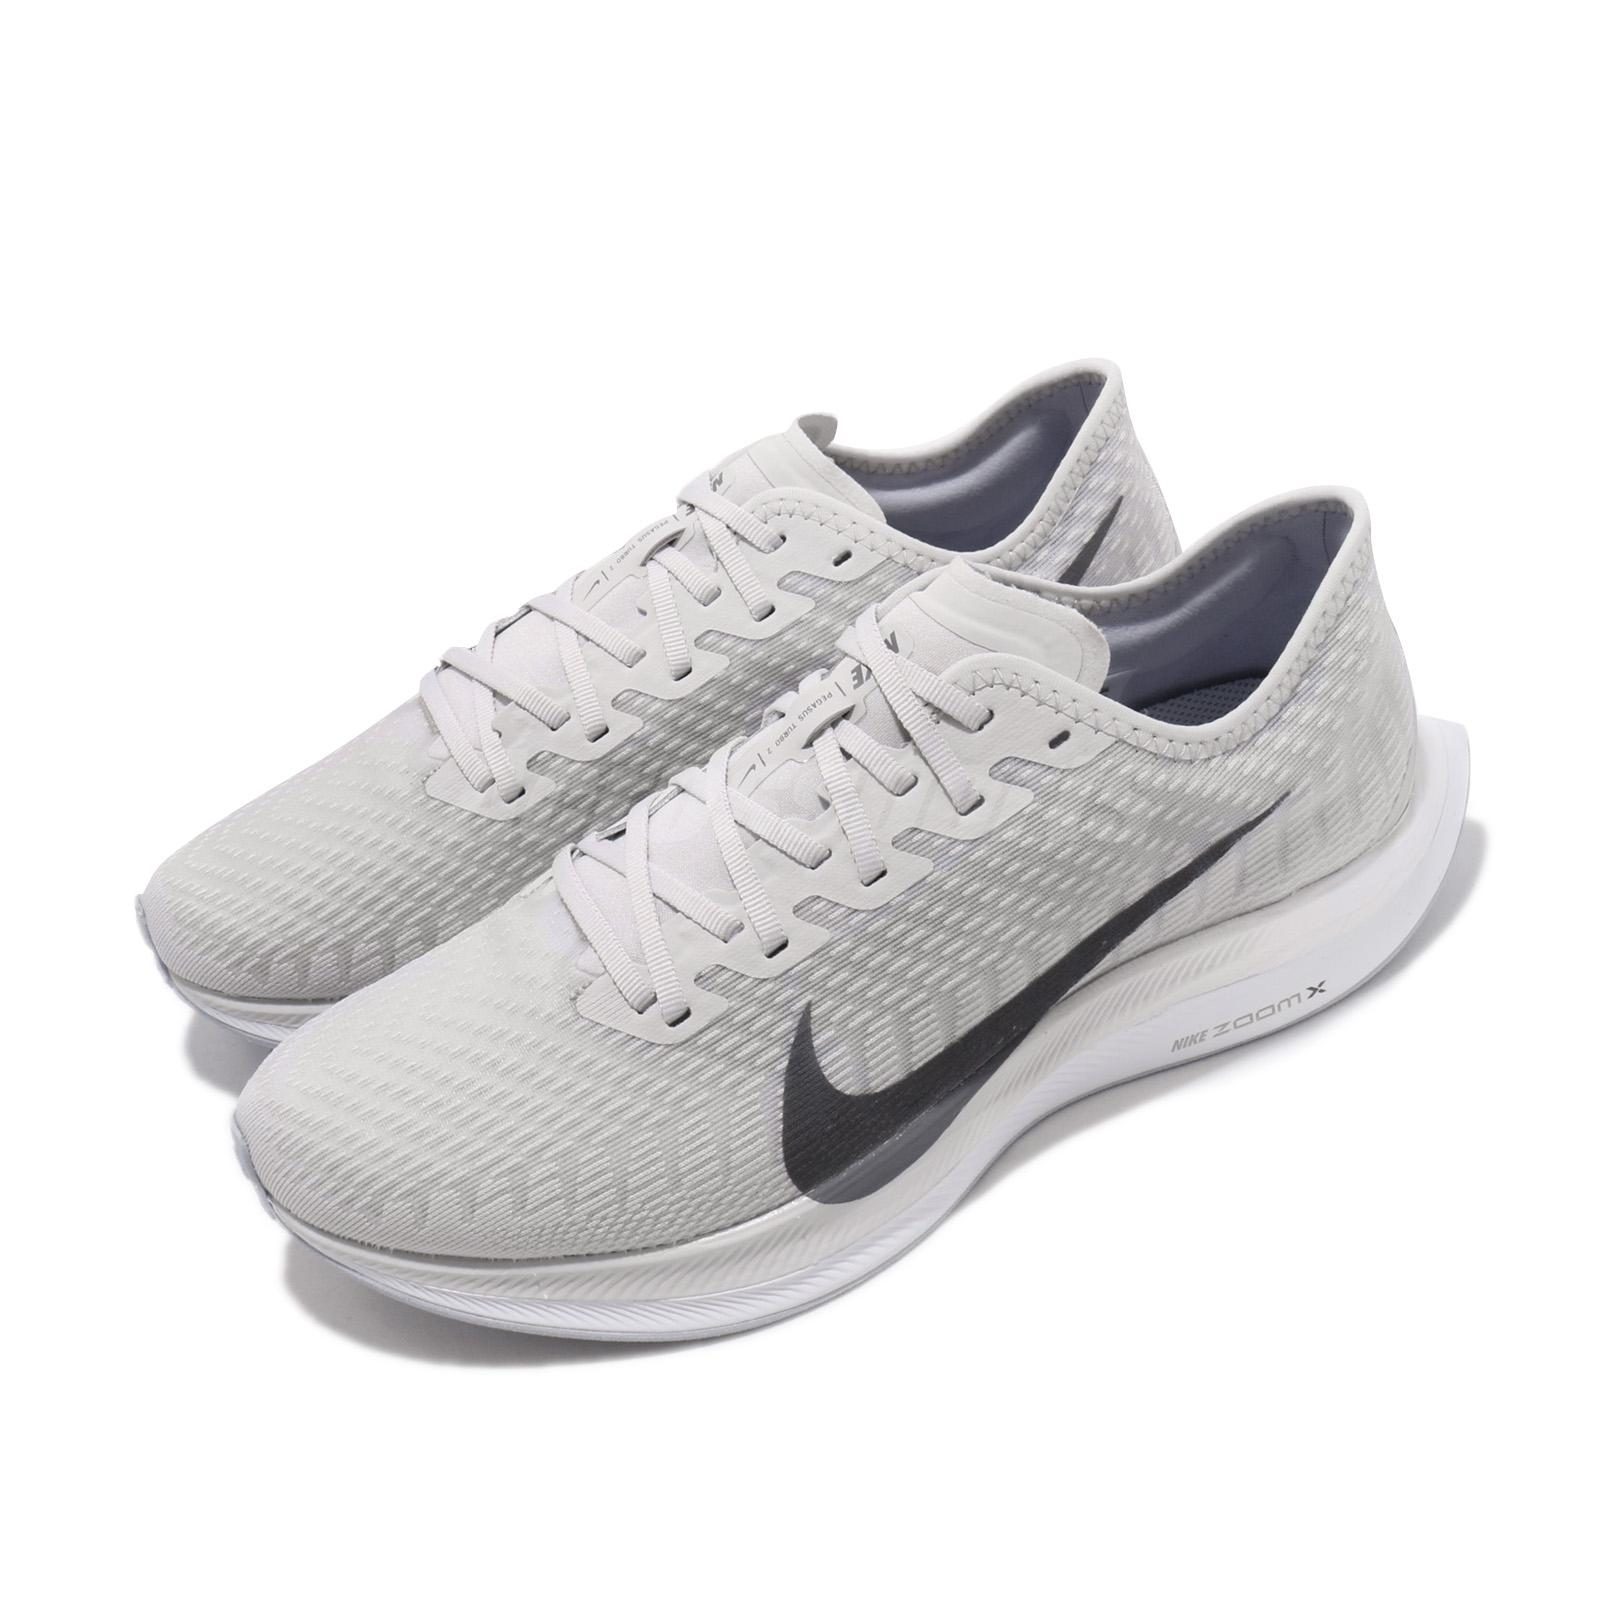 more photos dd77a aac1f Details about Nike Zoom Pegasus Turbo 2 Vast Grey White Men Running Shoes  Sneakers AT2863-002